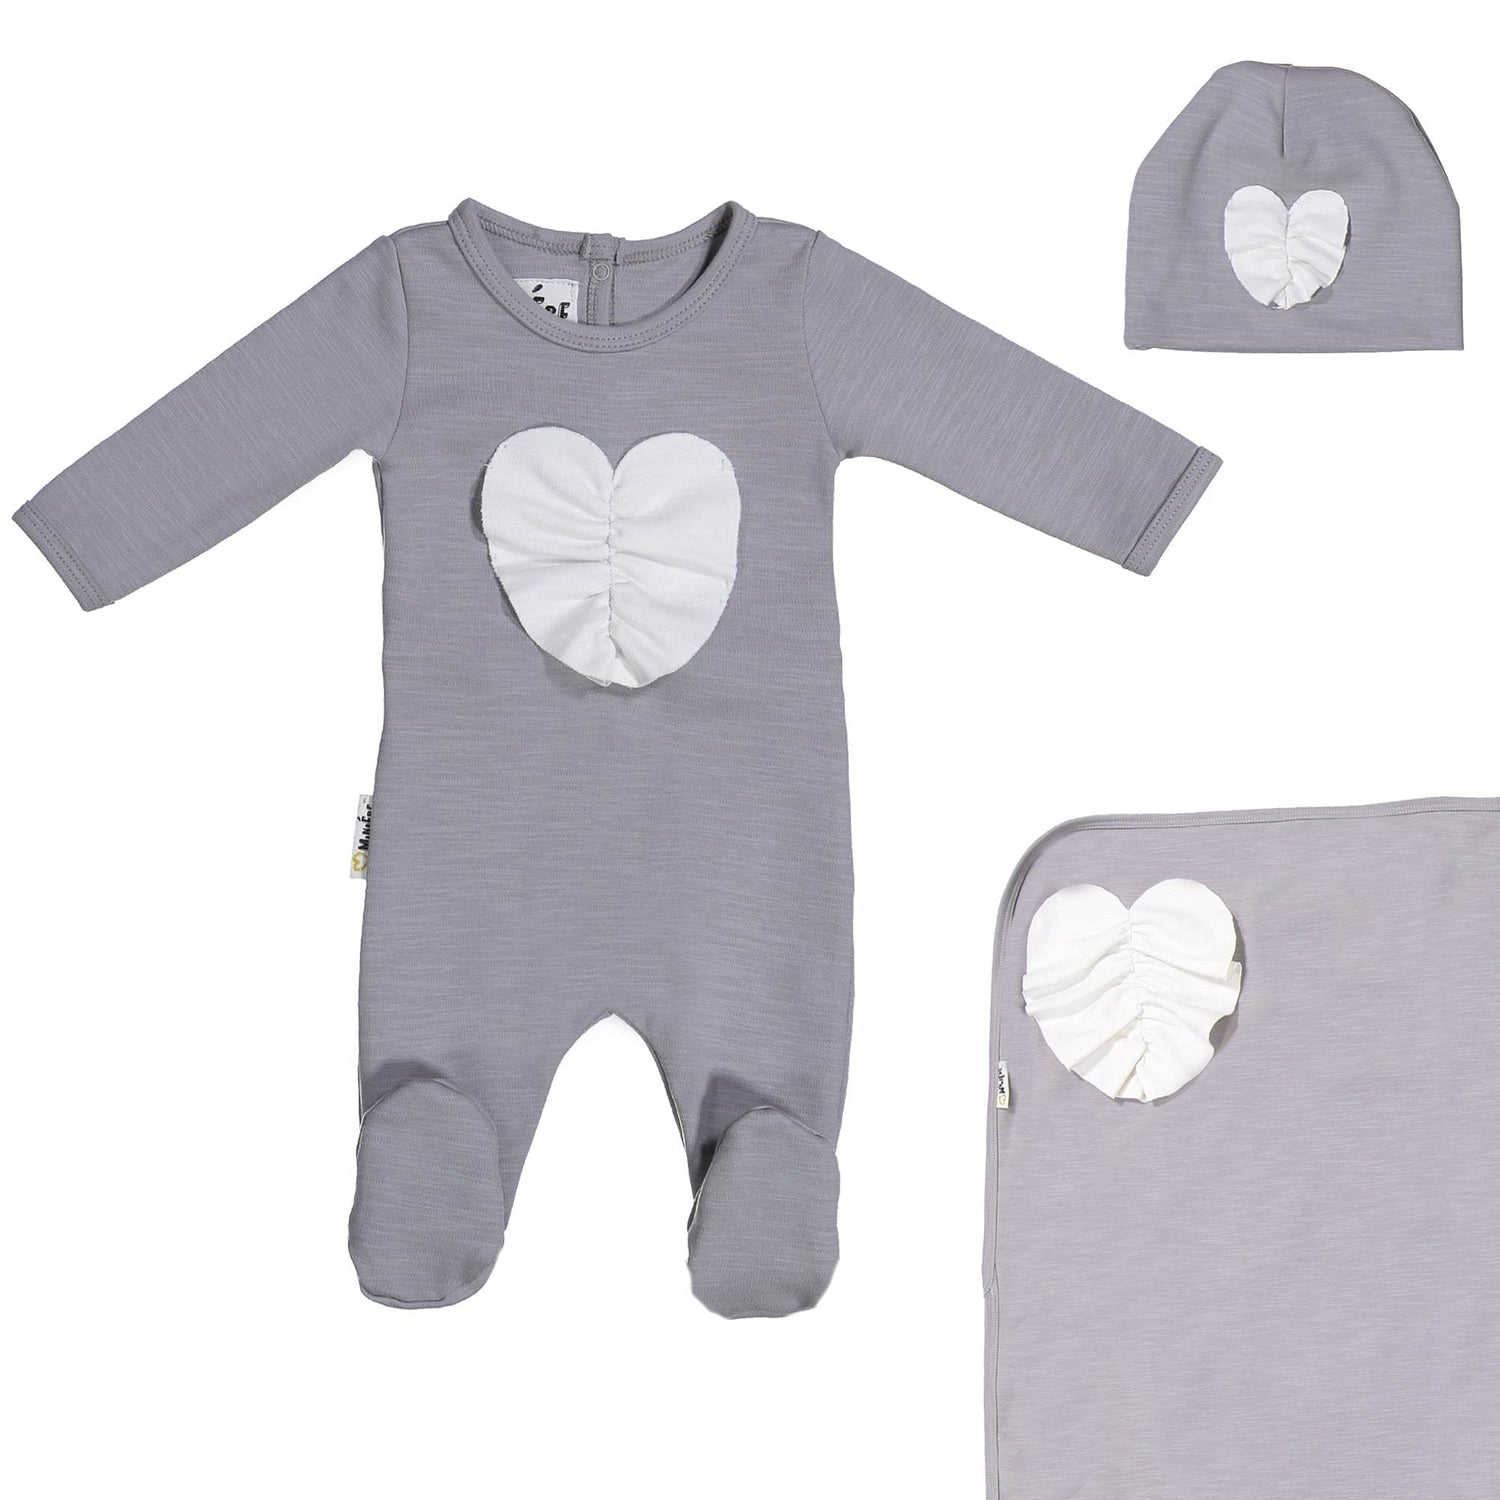 Ruched Heart Footie Set Maniere Accessories Grey 3 Month